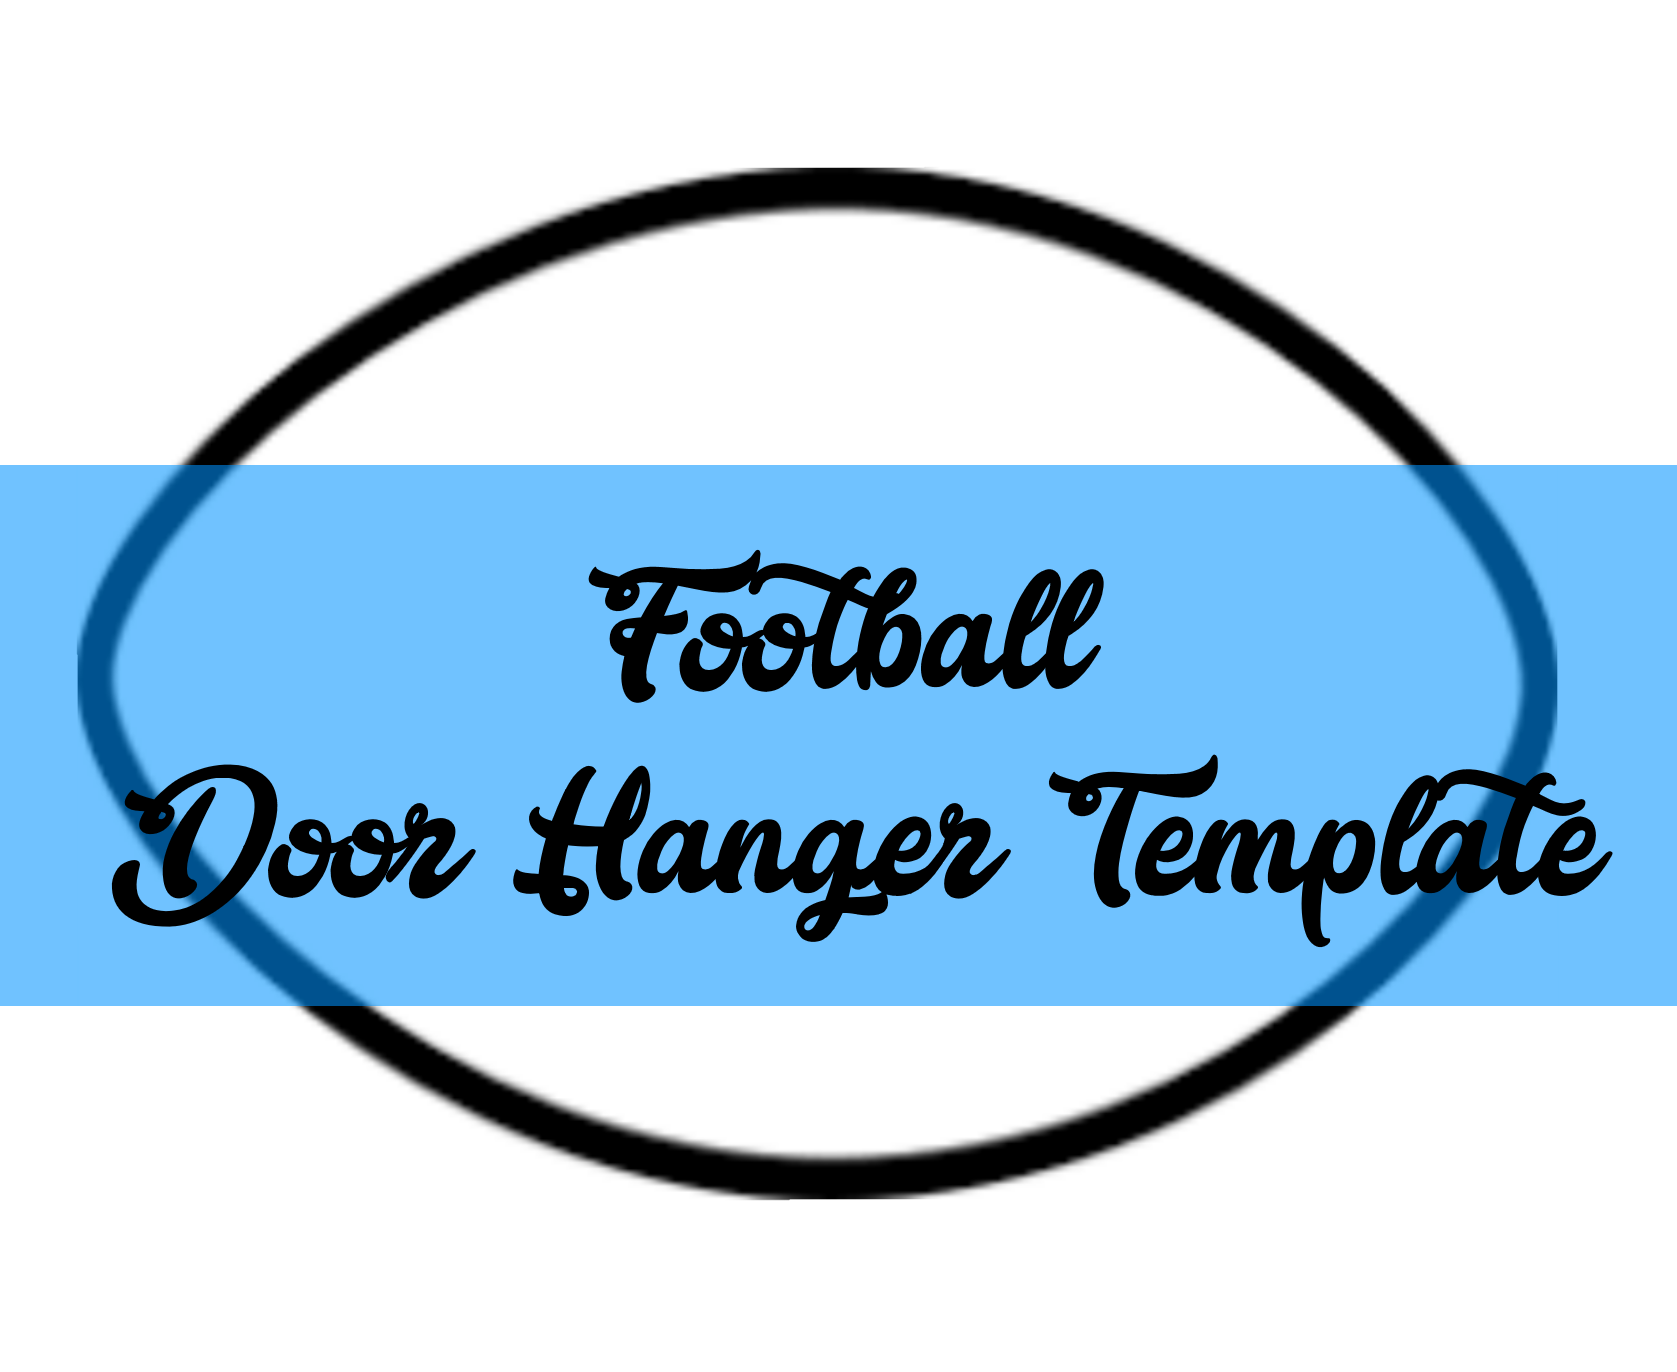 Football Door Hanger Template